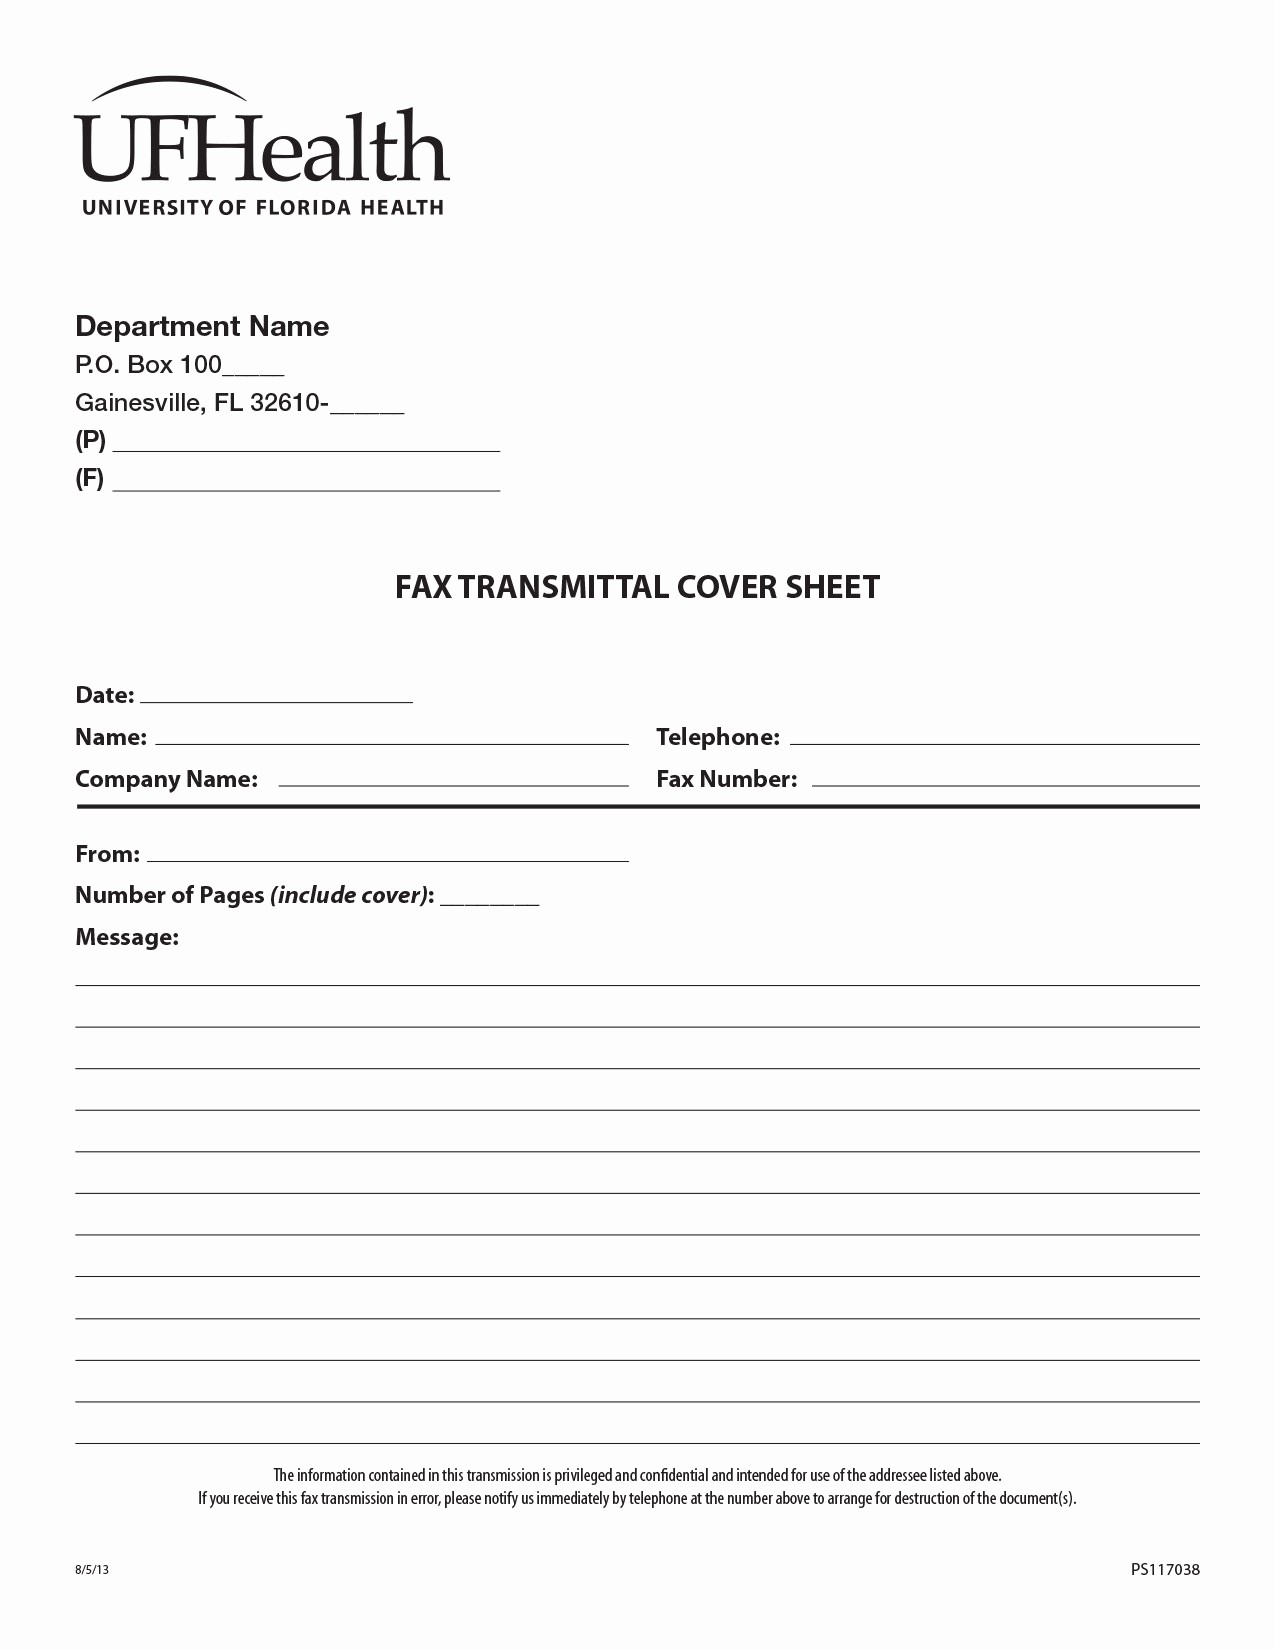 Professional Fax Cover Sheet Template Lovely Business Business Fax Cover Sheet